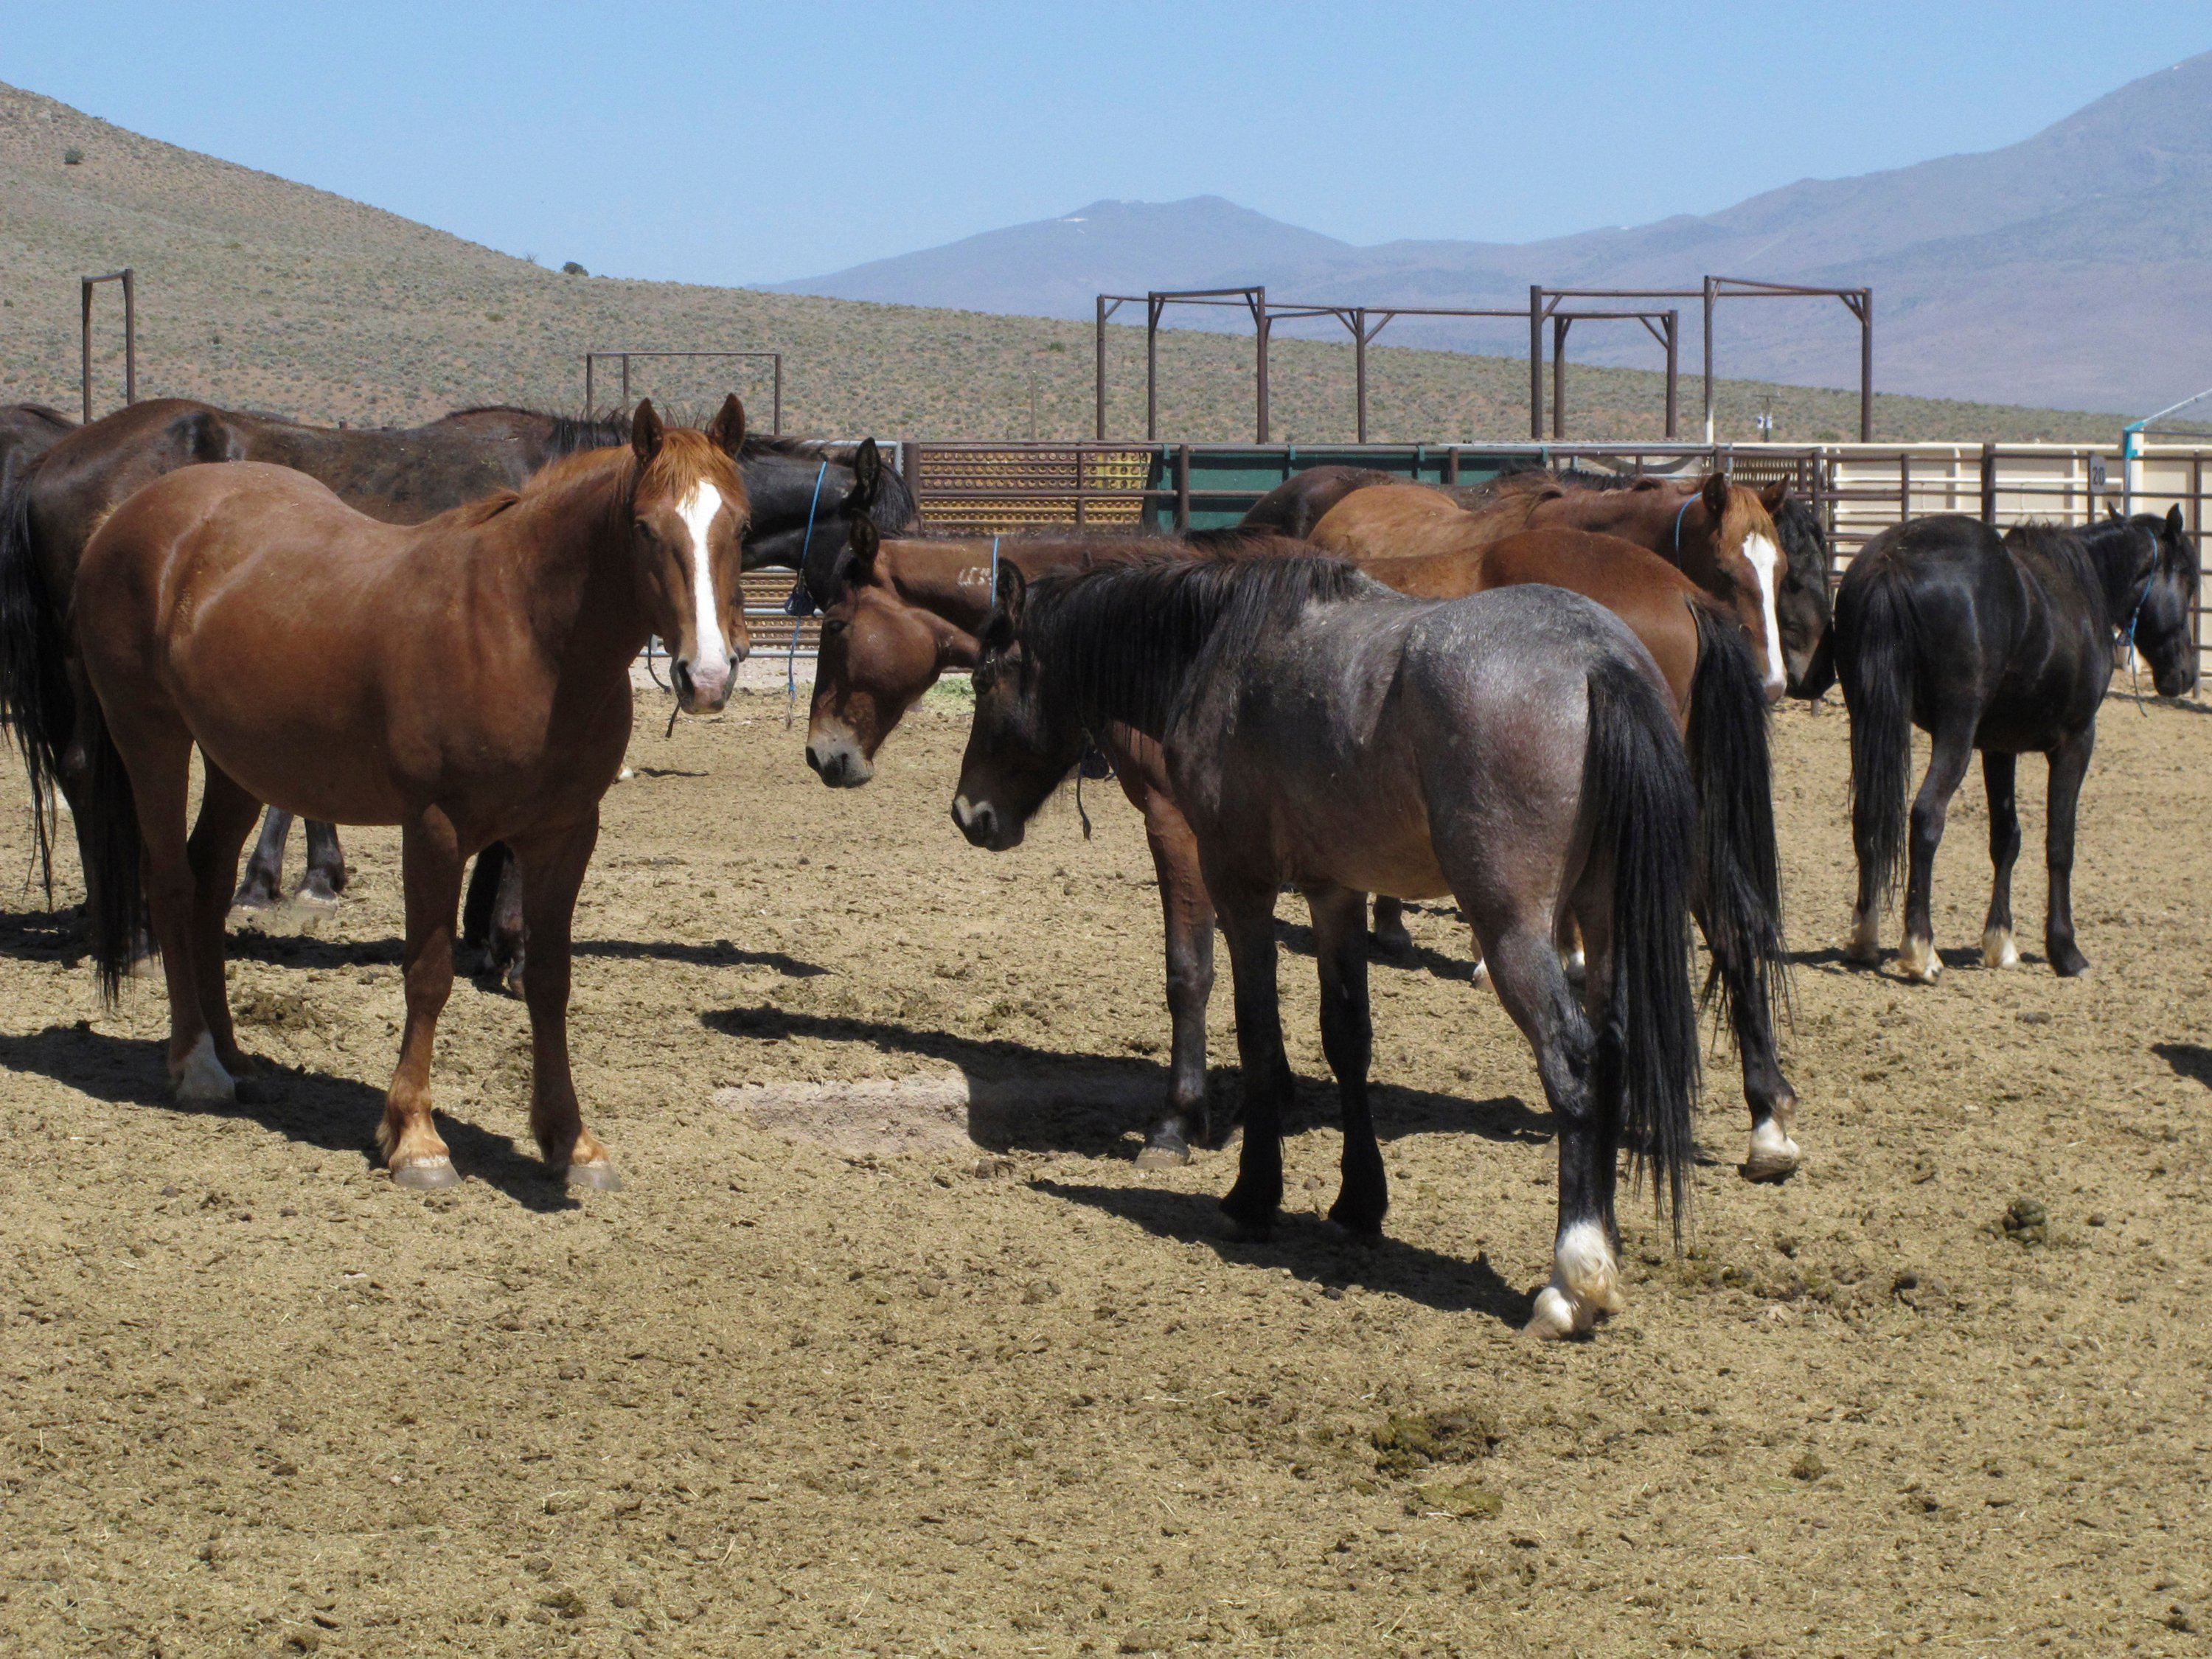 US agency may offer $1,000 to people who adopt wild horses